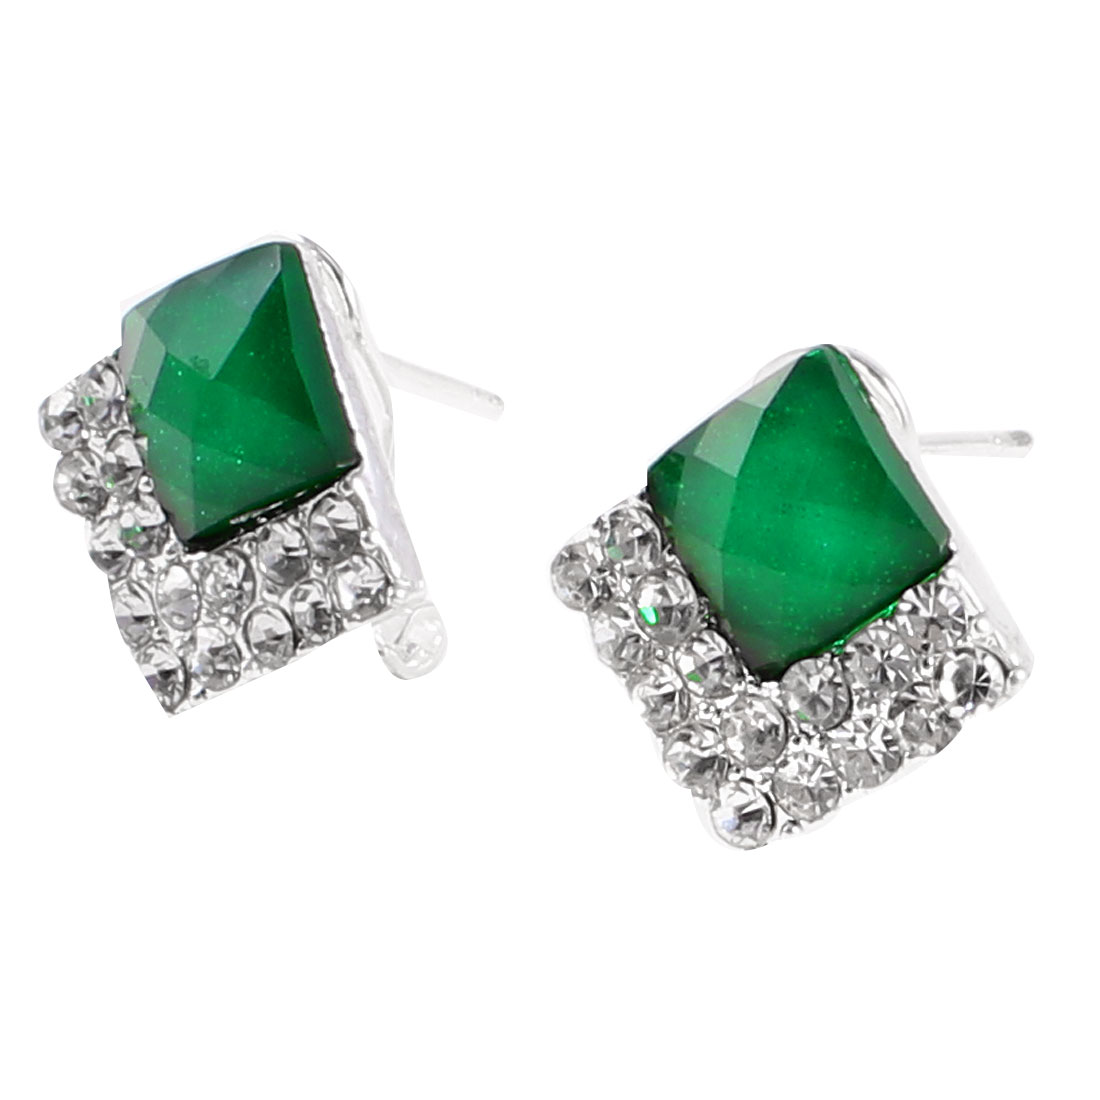 Pair Silver Tone Green Square Beads Detail Mini Clip Earrings Stud for Lady